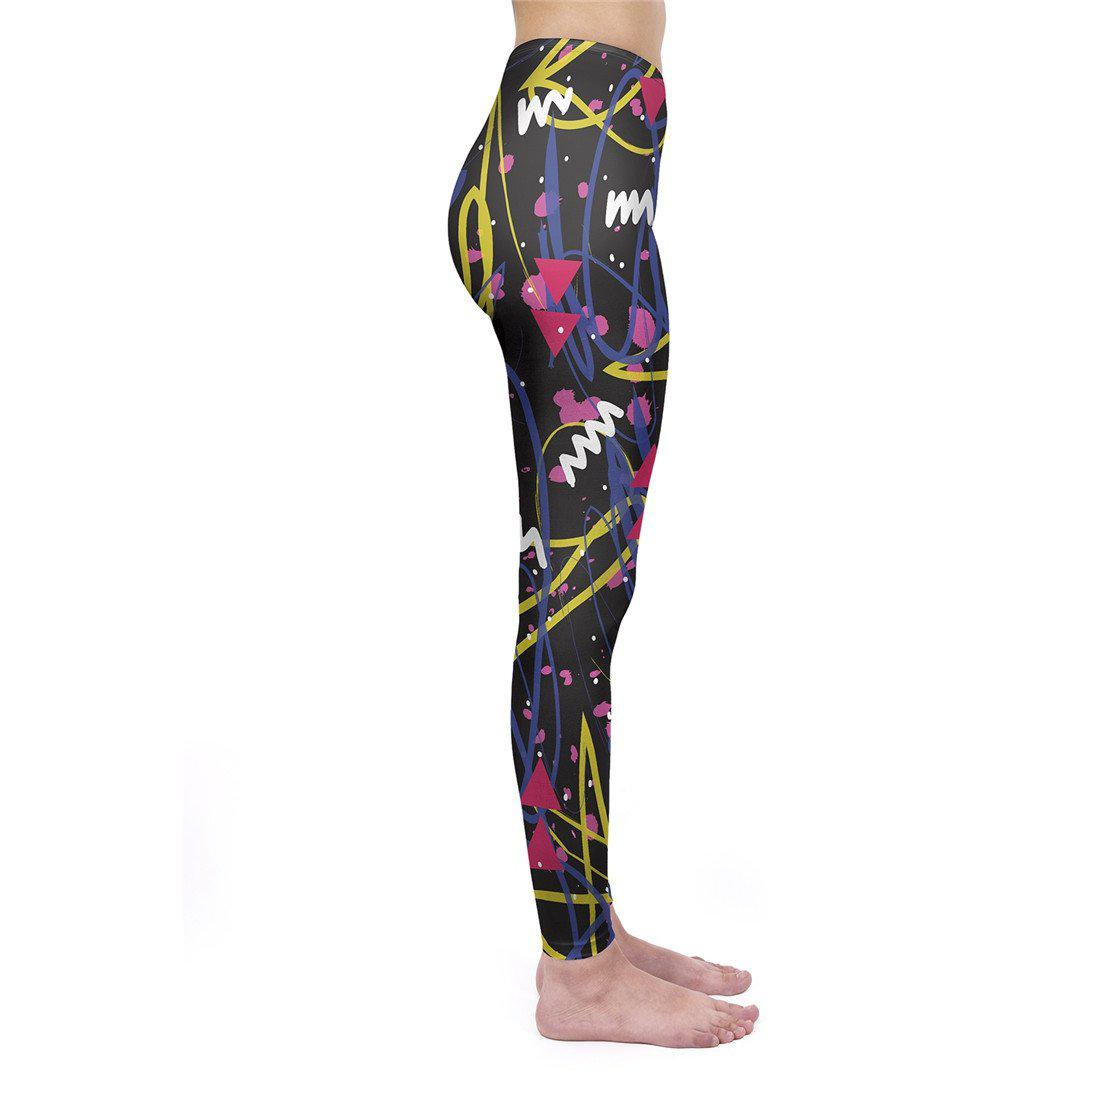 Sketch Neo Pop Regular Leggings